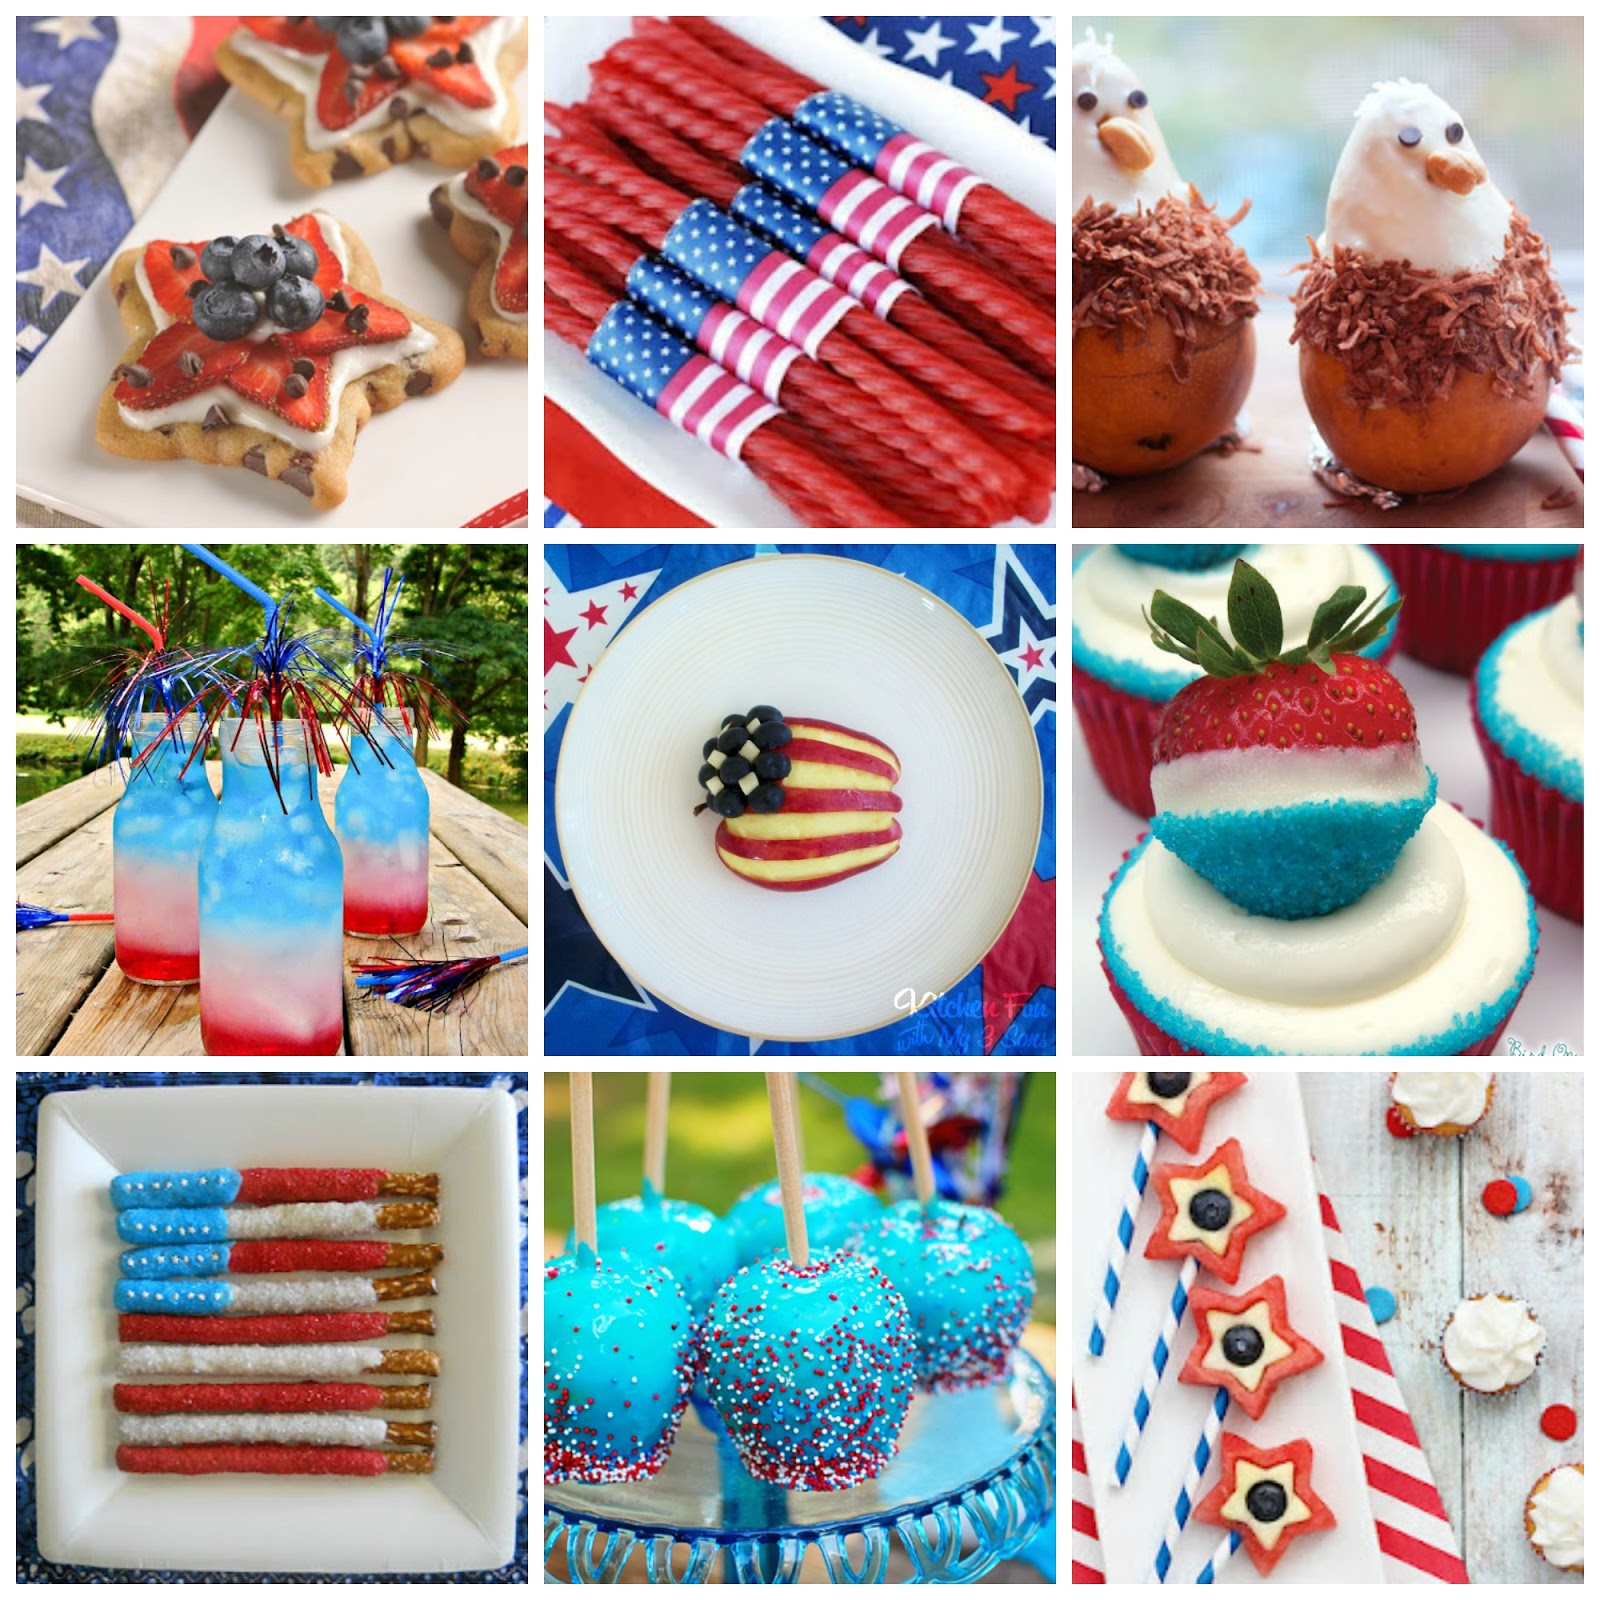 20 july 4th fun food ideas kitchen fun with my 3 sons for July 4th food ideas